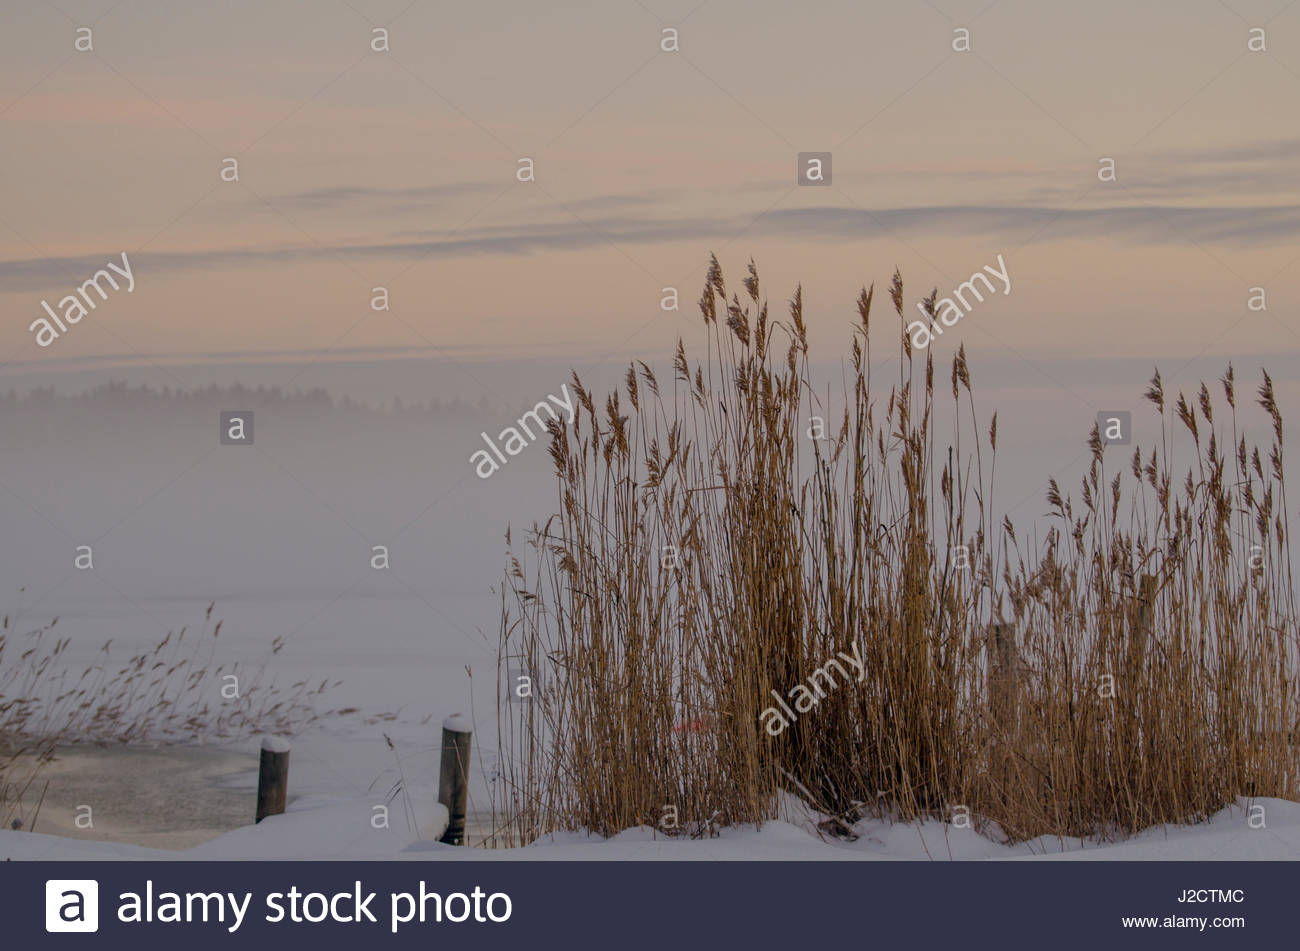 Heavy mist on the icy water, and reeds in winter. - Stock Image